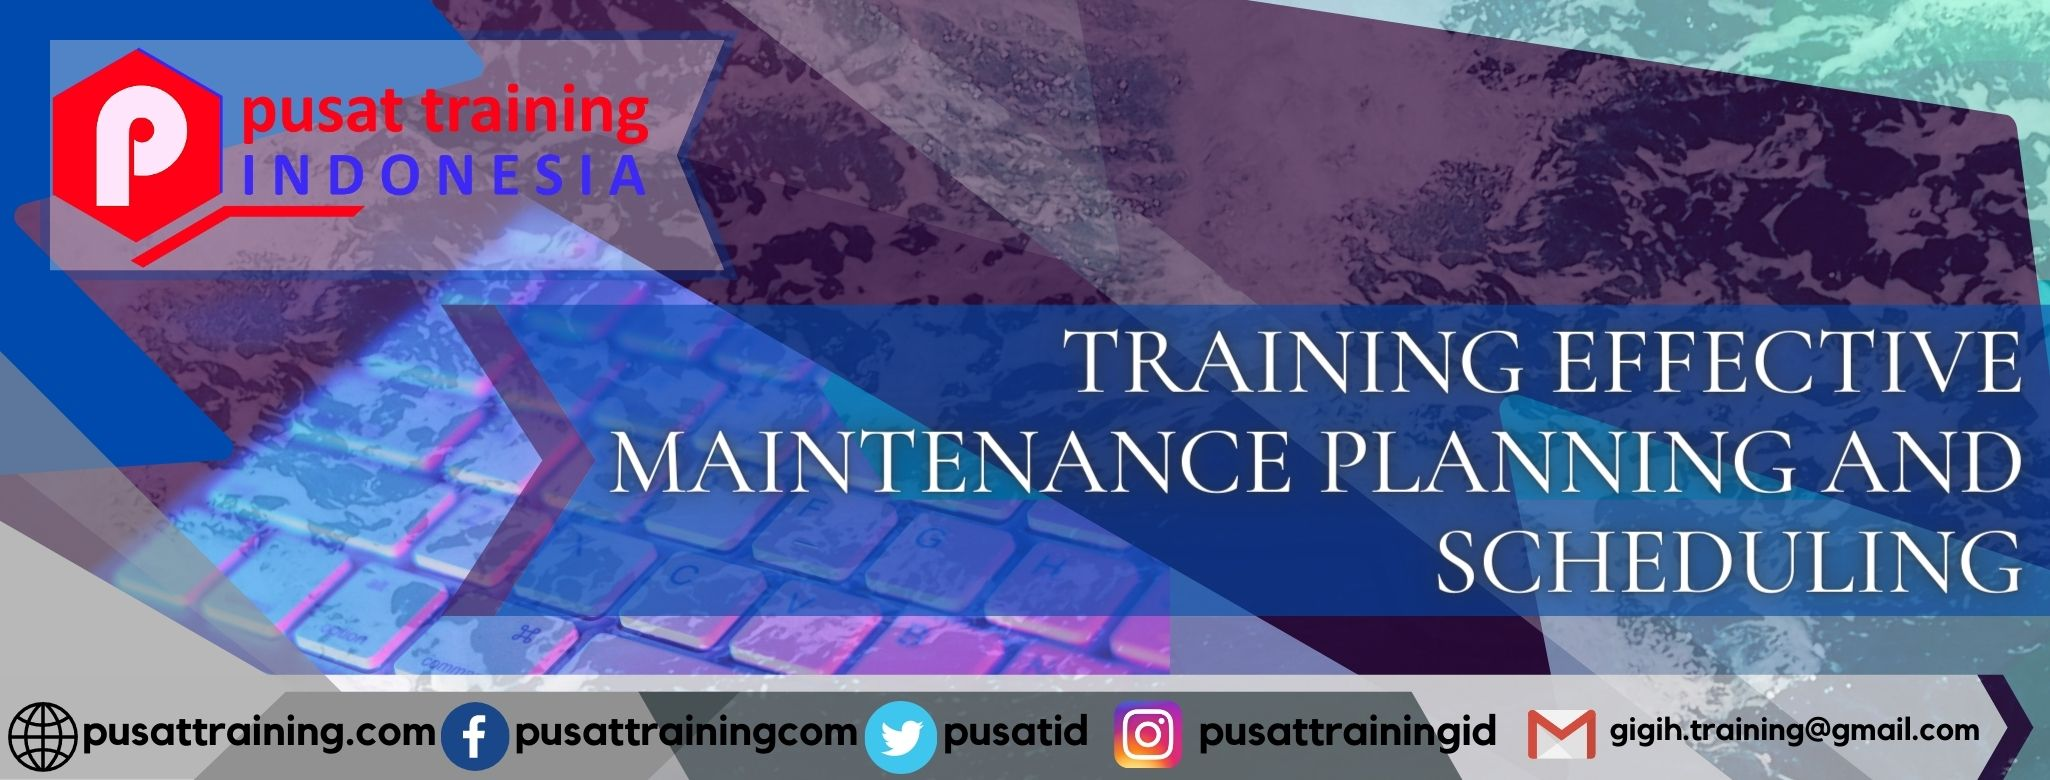 training-effective-maintenance-planning-and-scheduling